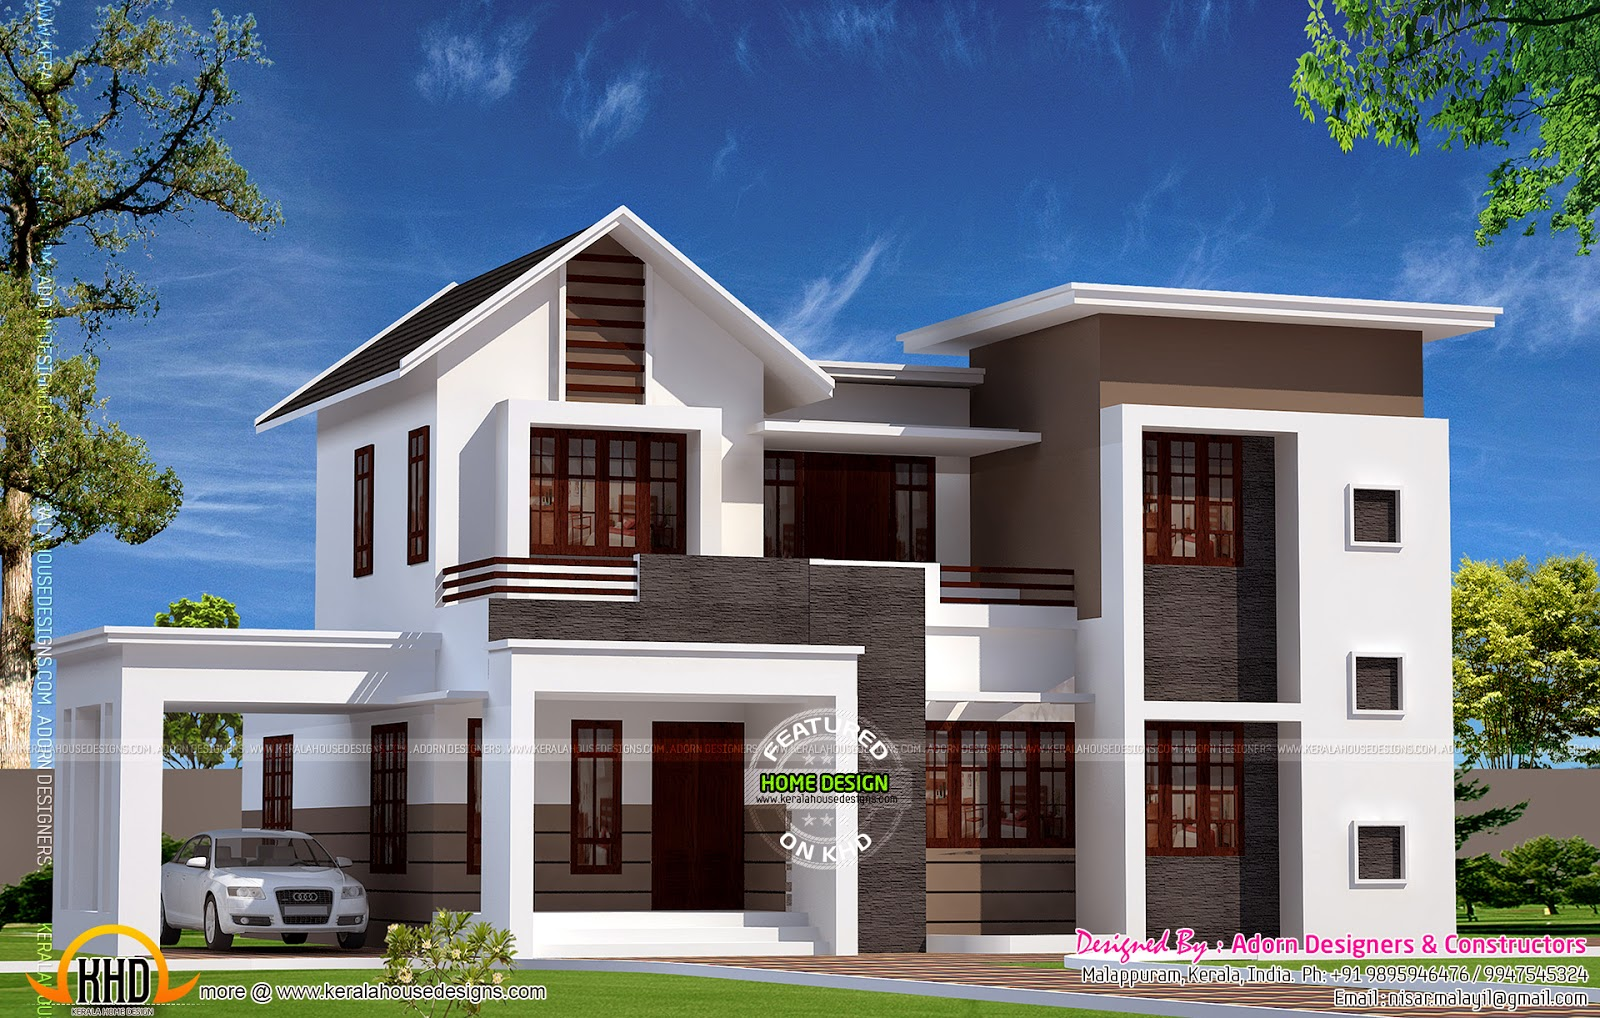 New house design in 1900 sq feet kerala home design and for Latest house designs photos